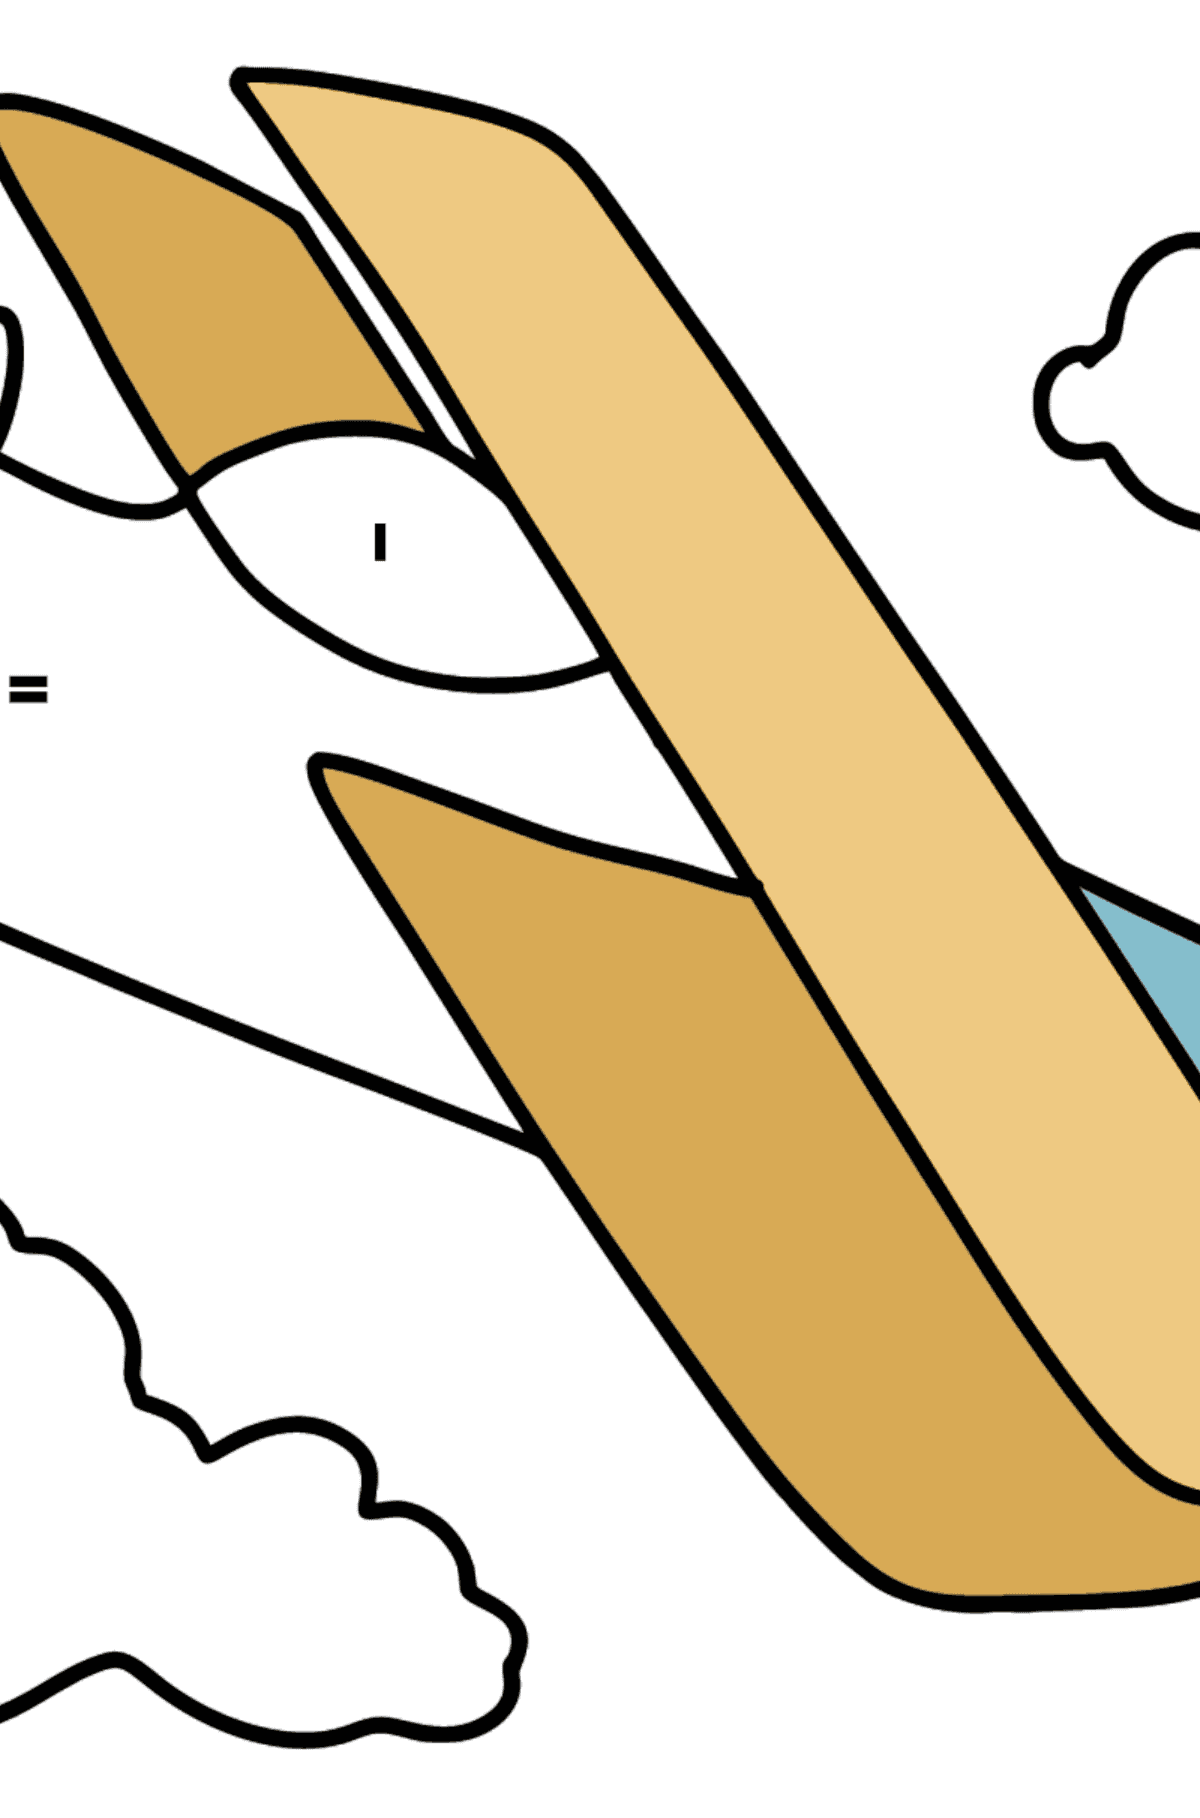 Simple Airplane coloring page - Coloring by Symbols and Geometric Shapes for Kids